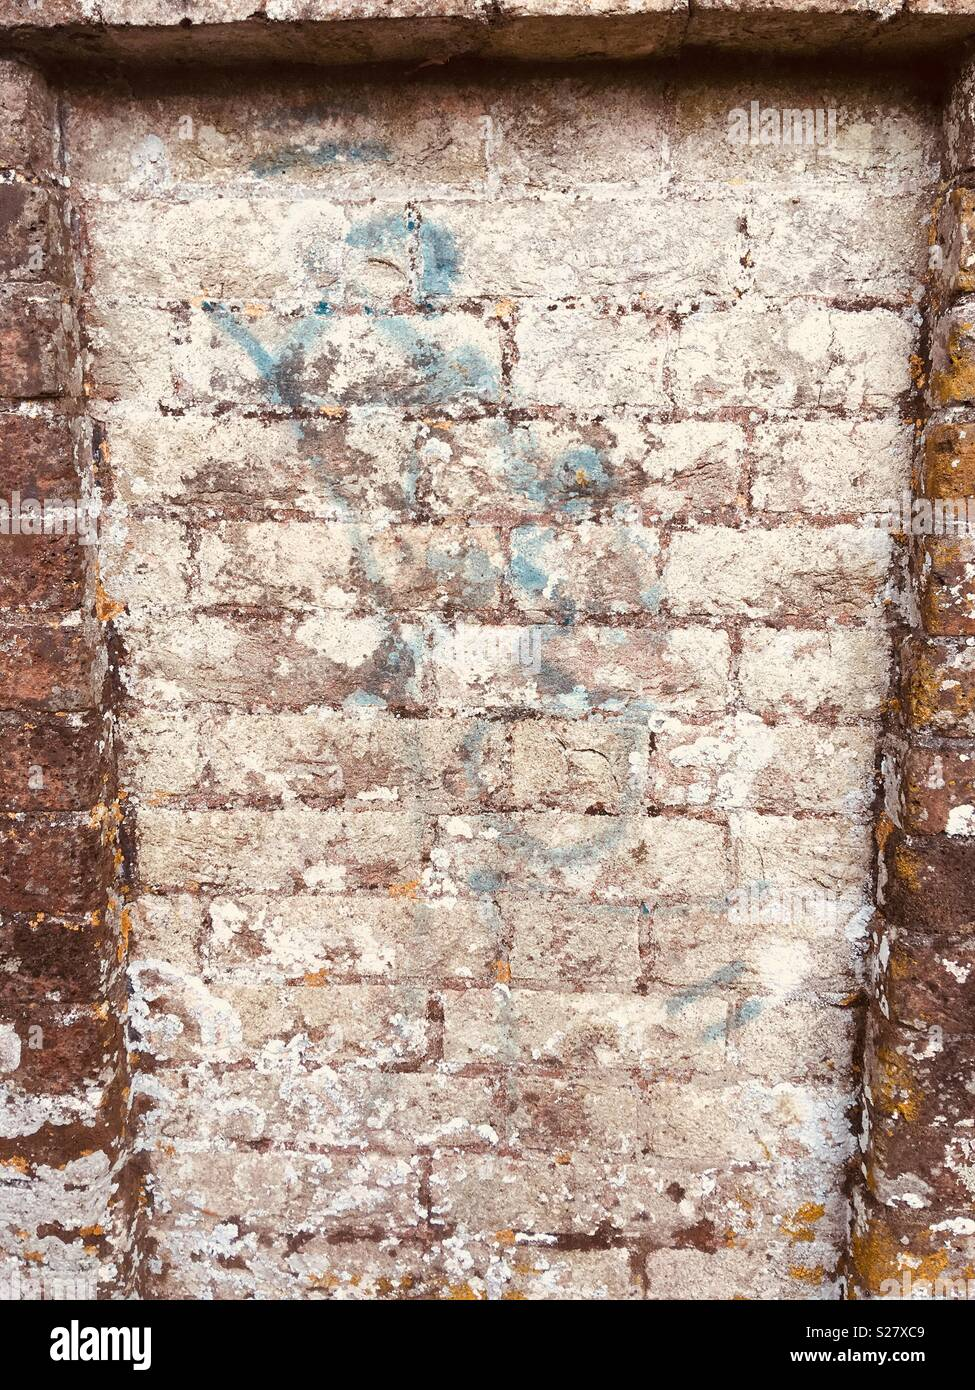 Painted blue marks on a brick wall - Stock Image